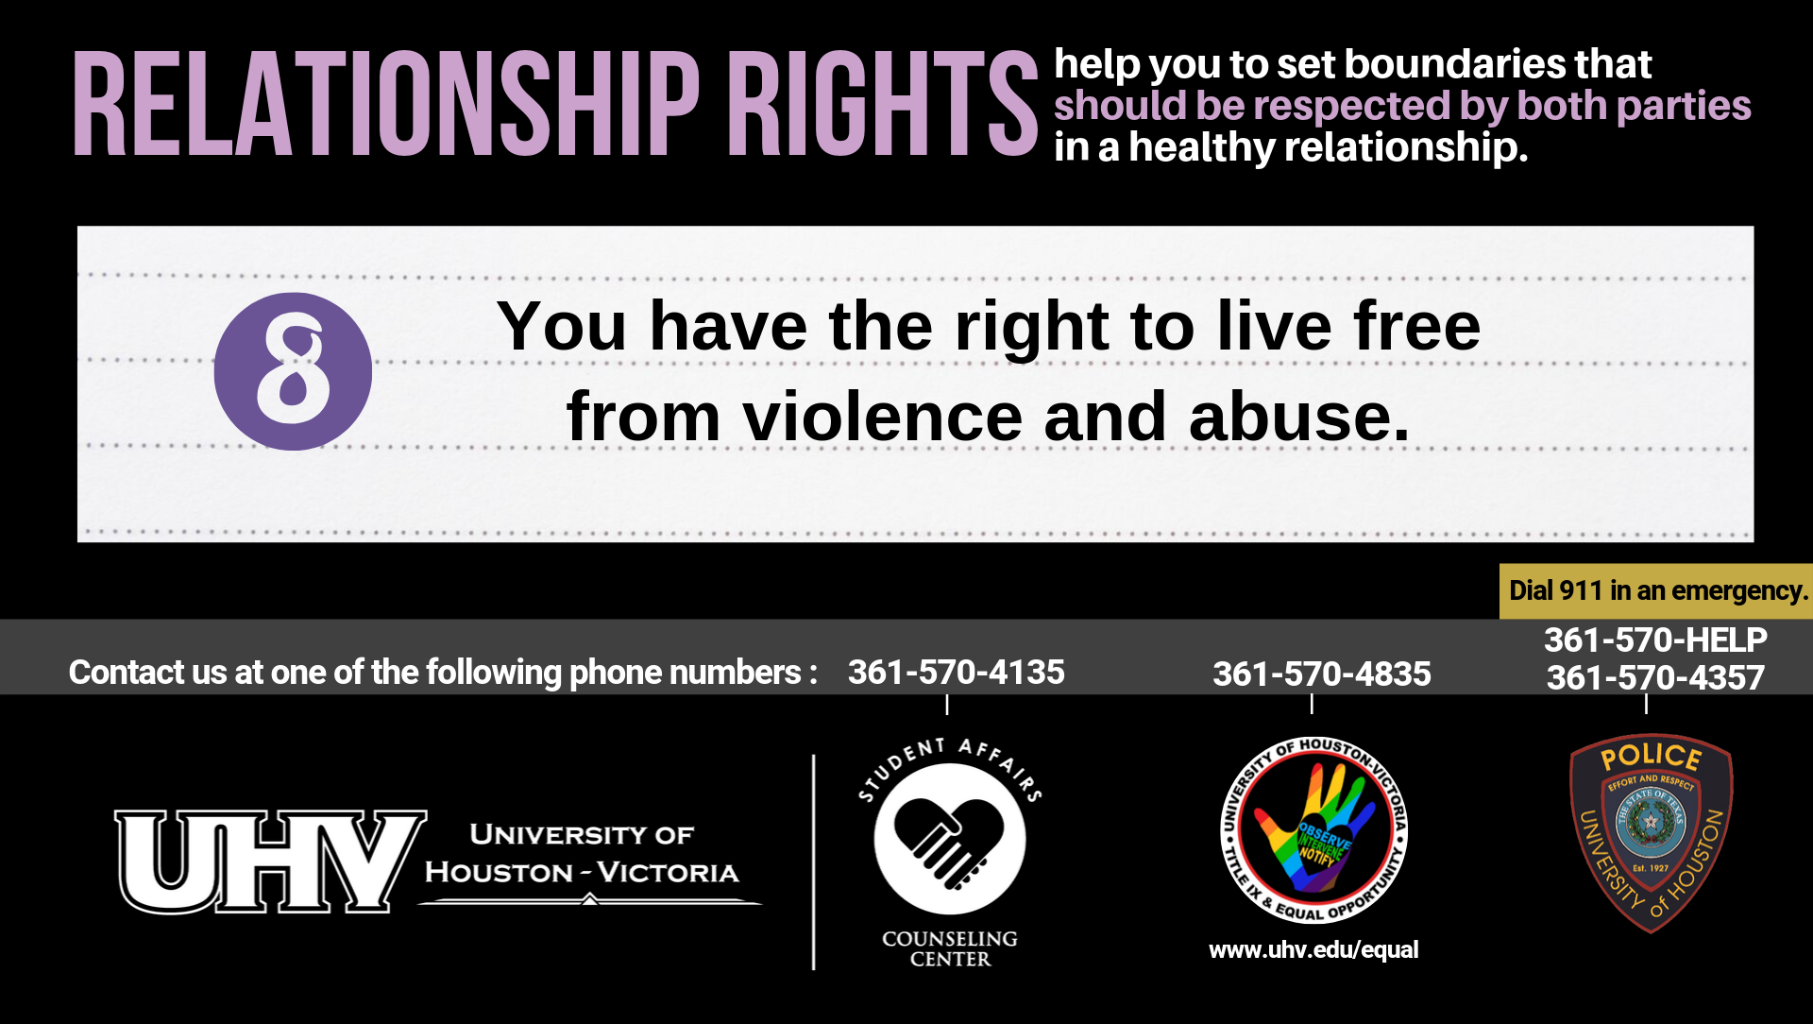 Relationship Rights help you to set boundaries that should be respected by both parties in a healthy relationship. 8. You have the right to live free from violence and abuse. University of Houston-Victoria Title IX and Equal Opportunity Logo (rainbow hand with heart insert with words Observe, Intervene, Notify).